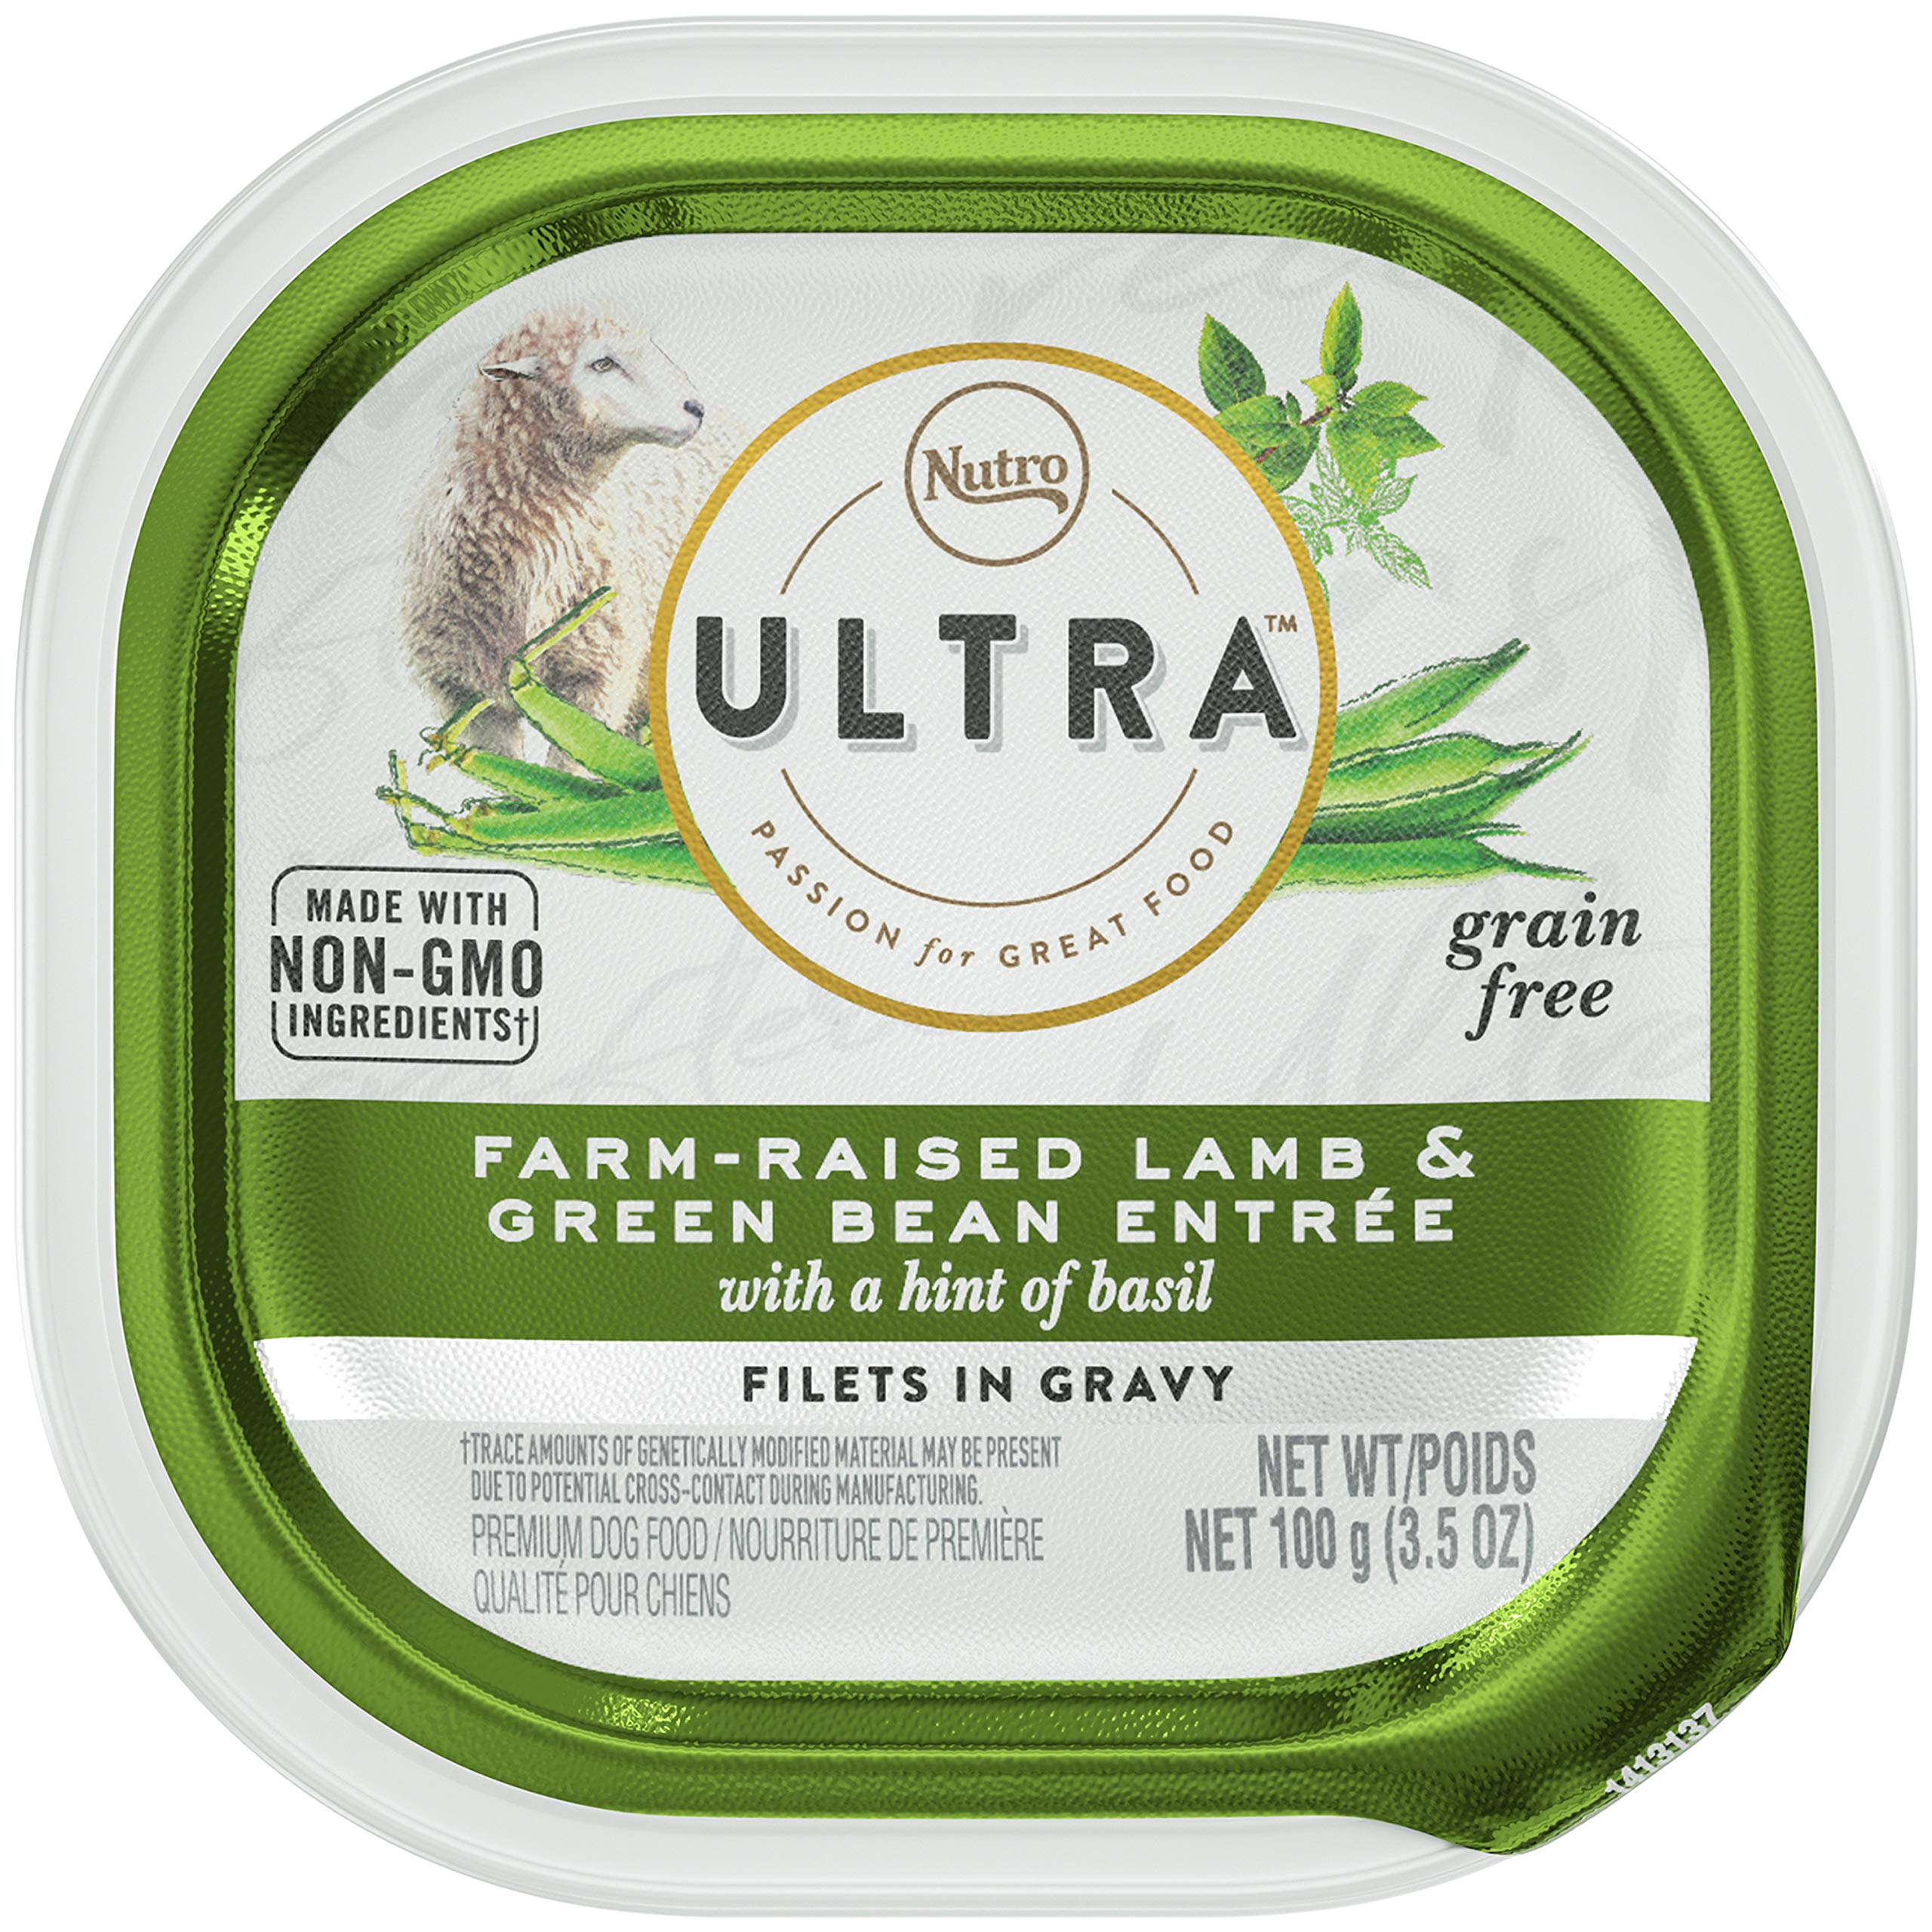 NUTRO ULTRA Adult High Protein Natural Grain Free Wet Dog Food Filets in Gravy Farm-Raised Lamb Entrée with Haricot Verts and Hint of Basil, (24) 3.5 oz. Trays by Nutro